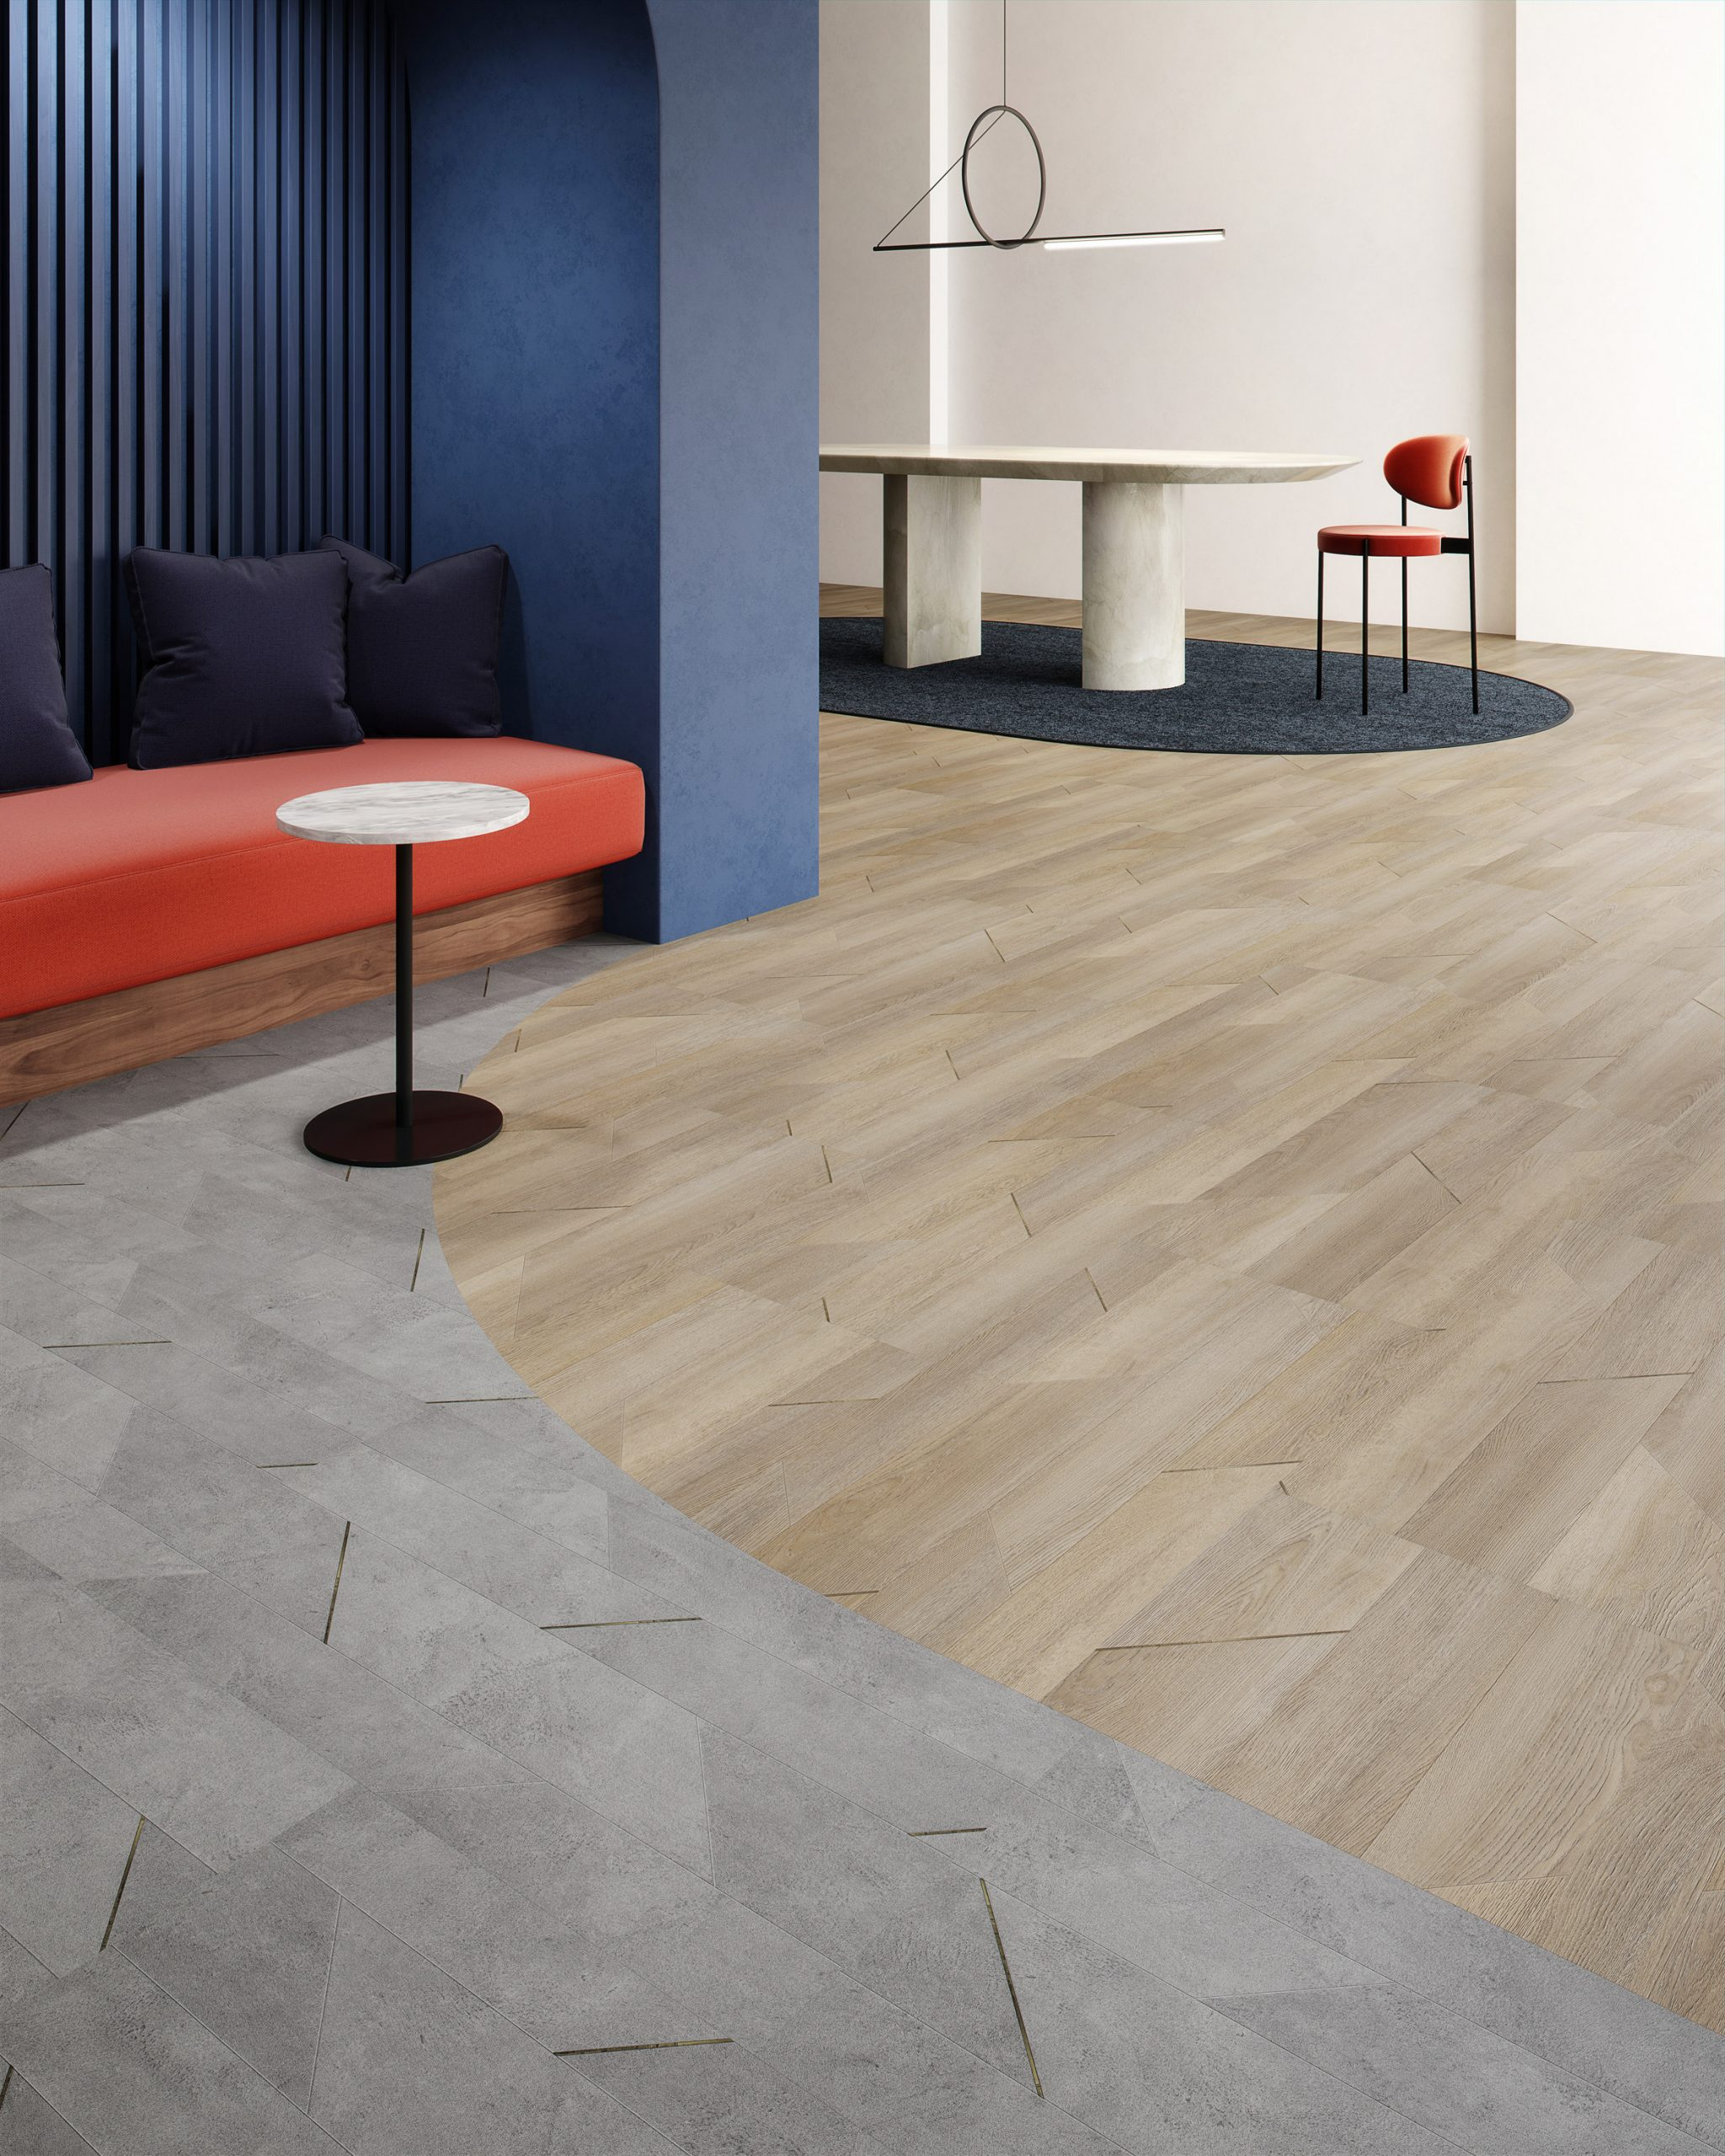 Inset collection of wood-and concrete-effect flooring by Patcraft